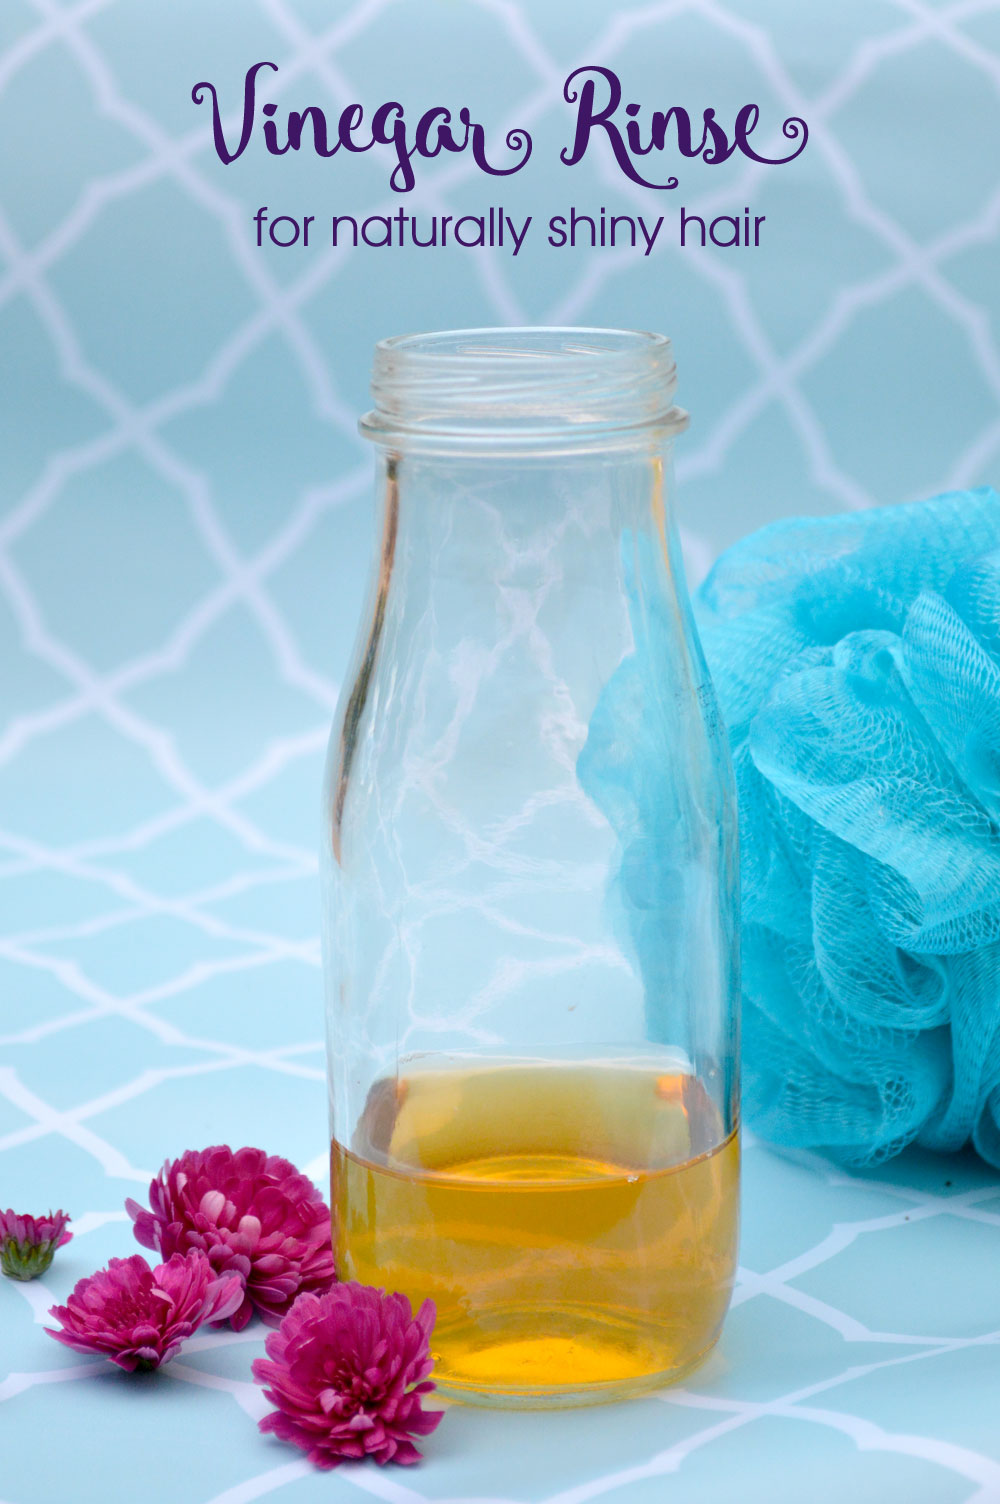 Vinegar Rinse for Shiny Hair - Mommy Scene Natural Hygiene Tips